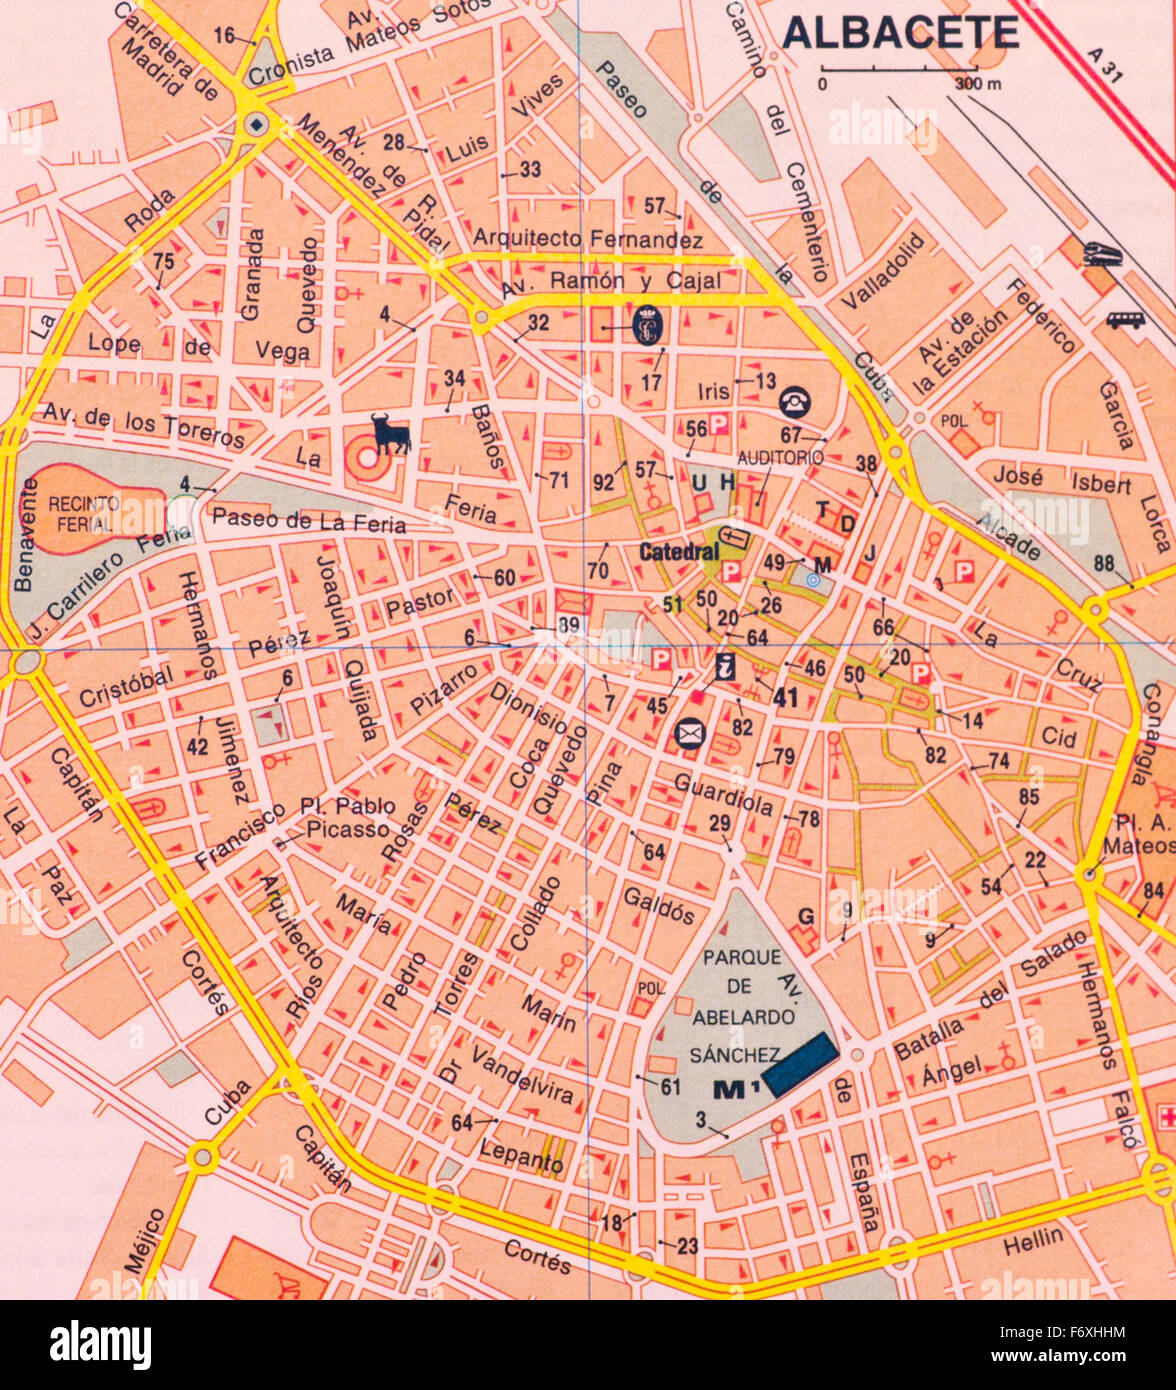 Street map Of The Spanish City Of Albacete Spain Stock Photo